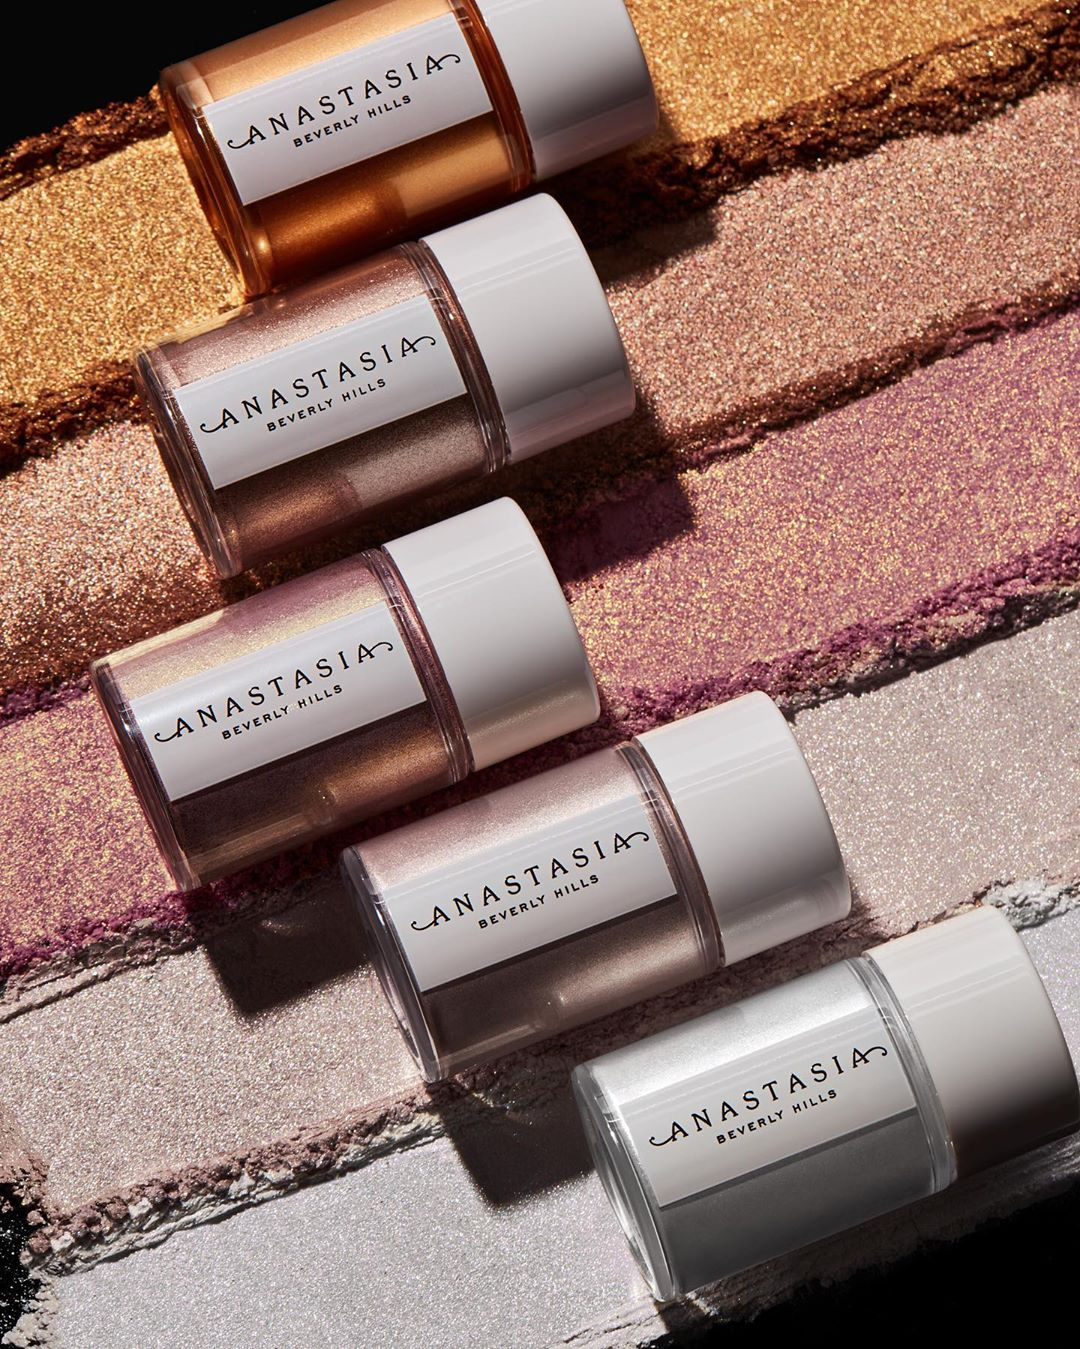 anastasia beverly hills loose pigments